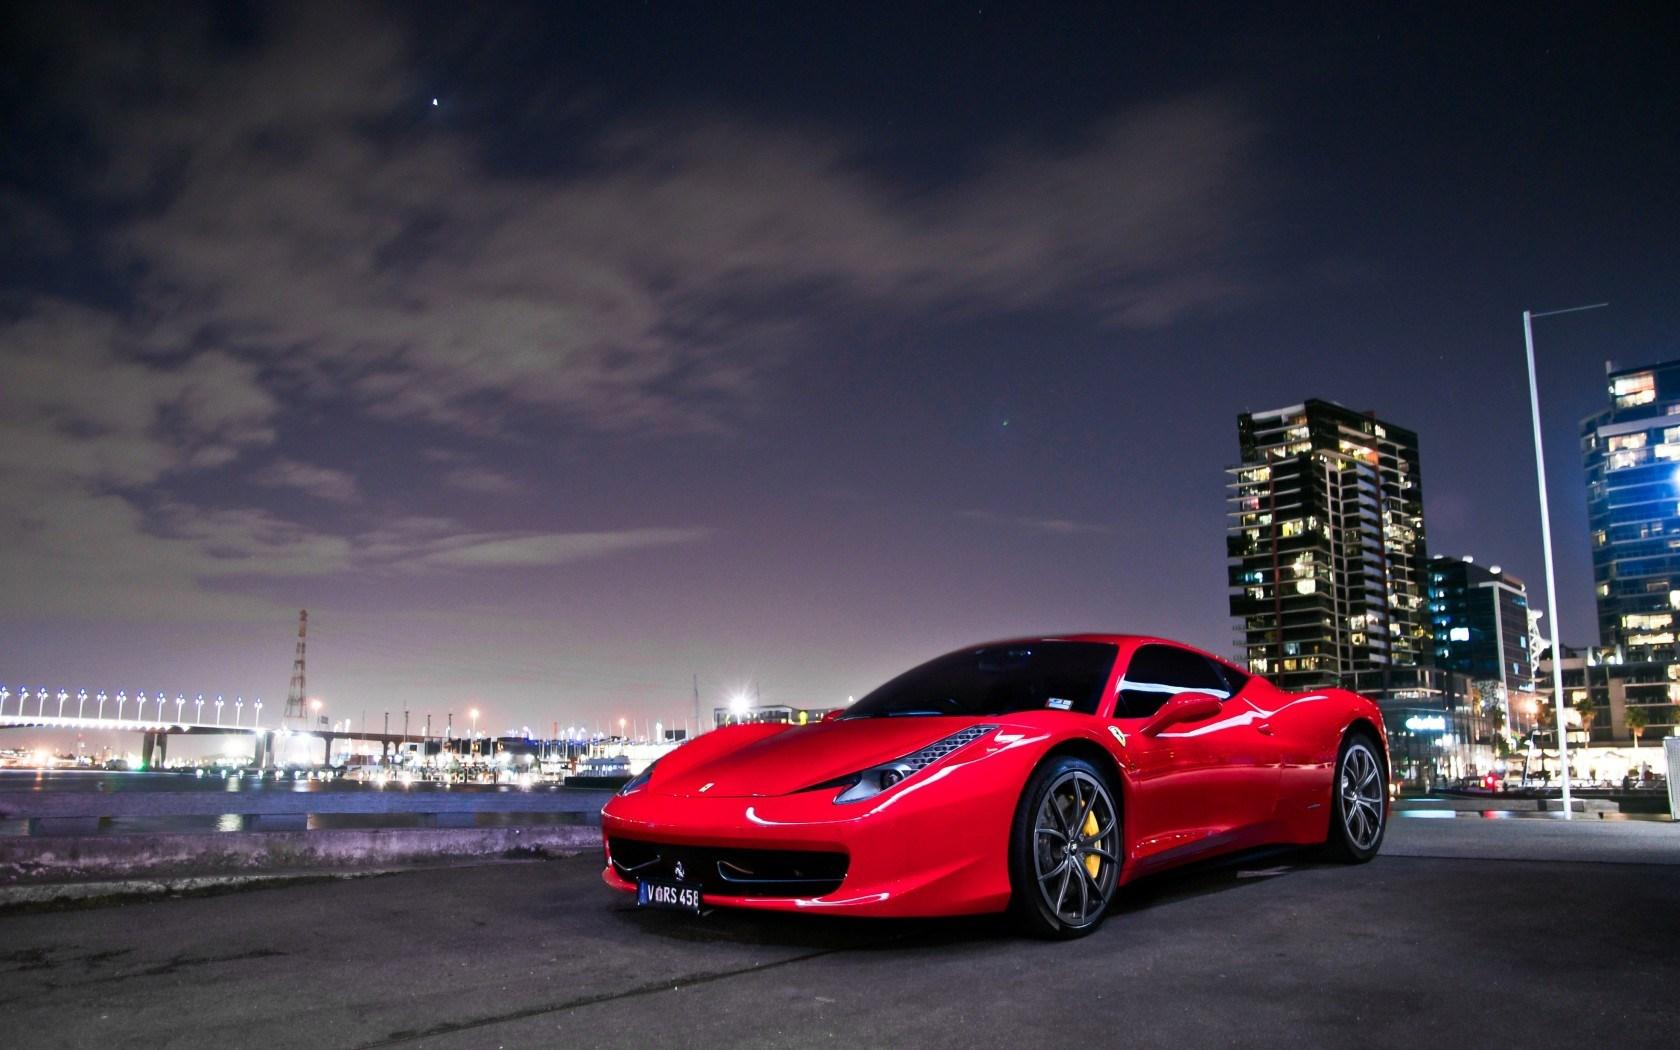 Cars Hd Wallpapers 1080p For Pc Bmw Ferrari 458 Italia Red Car Night Wallpaper Nature And